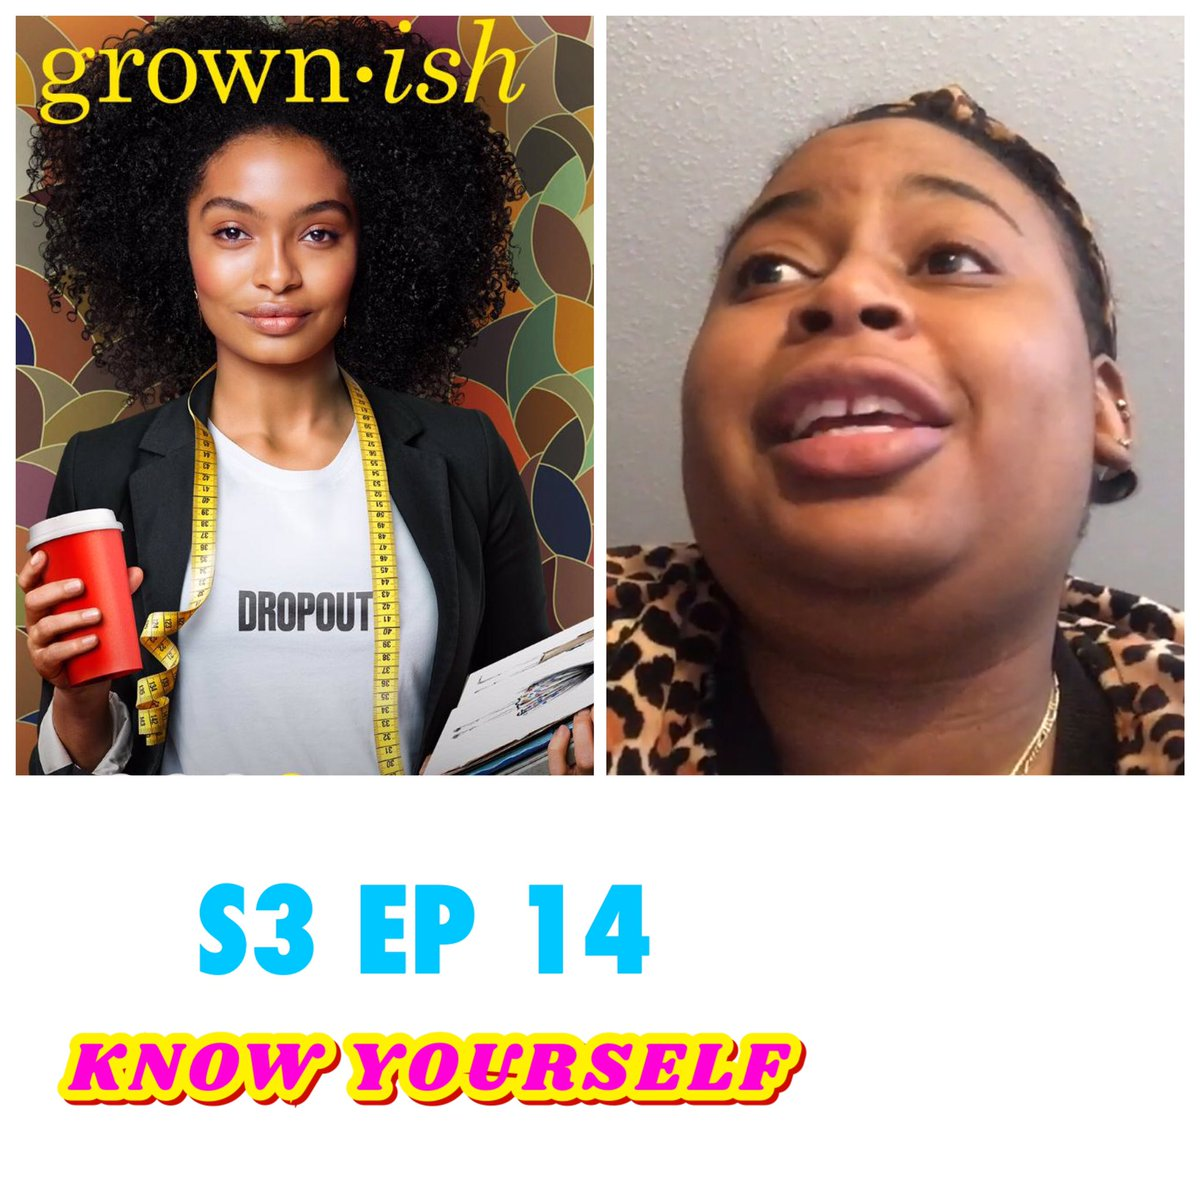 New grownish review for ep 14 just dropped. Check it out!      #grownish